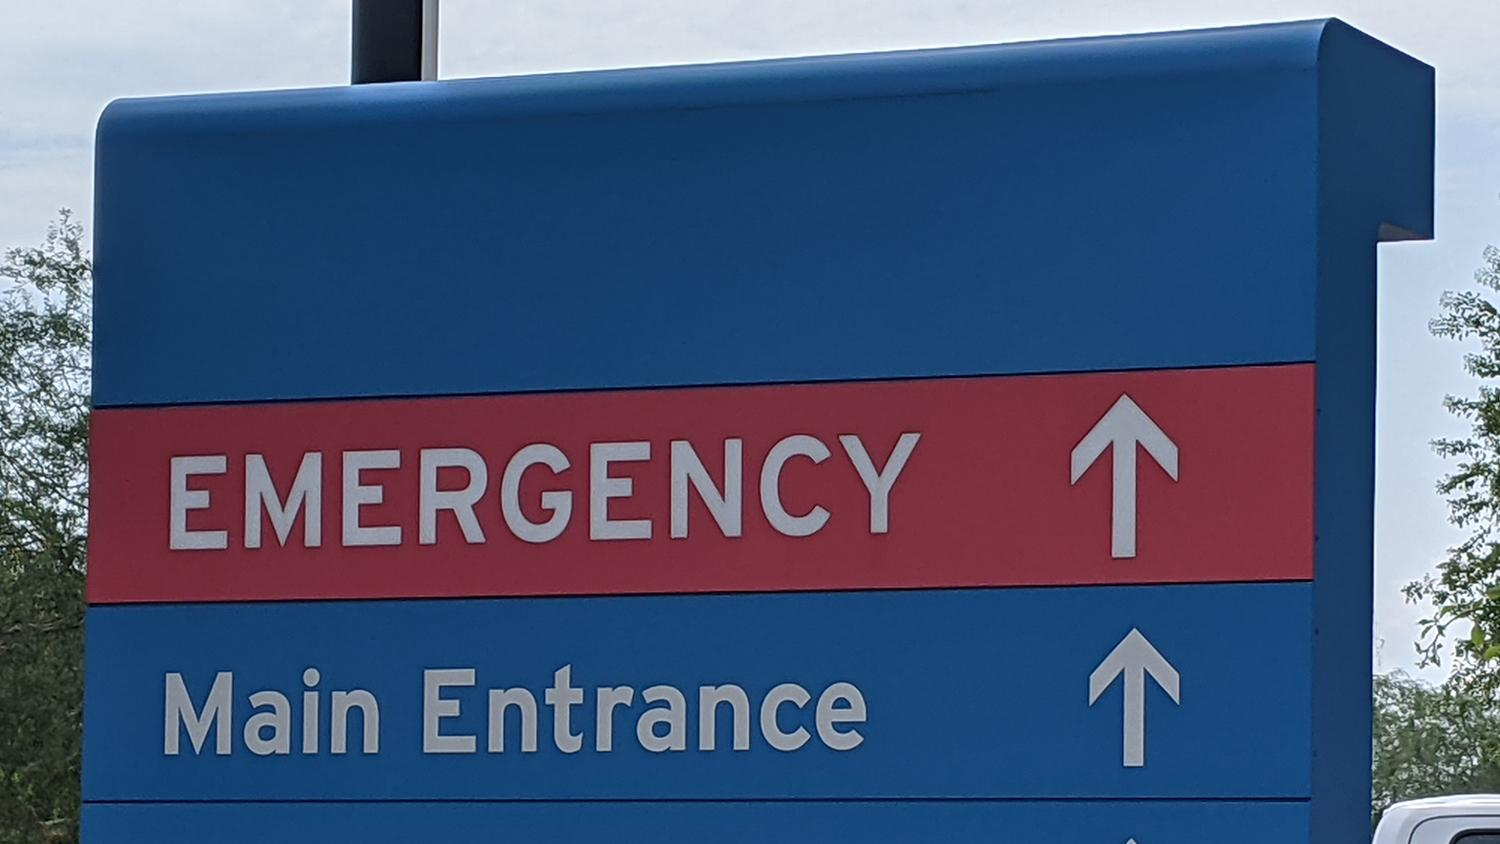 A sign pointing to the emergency department at an Arizona hospital